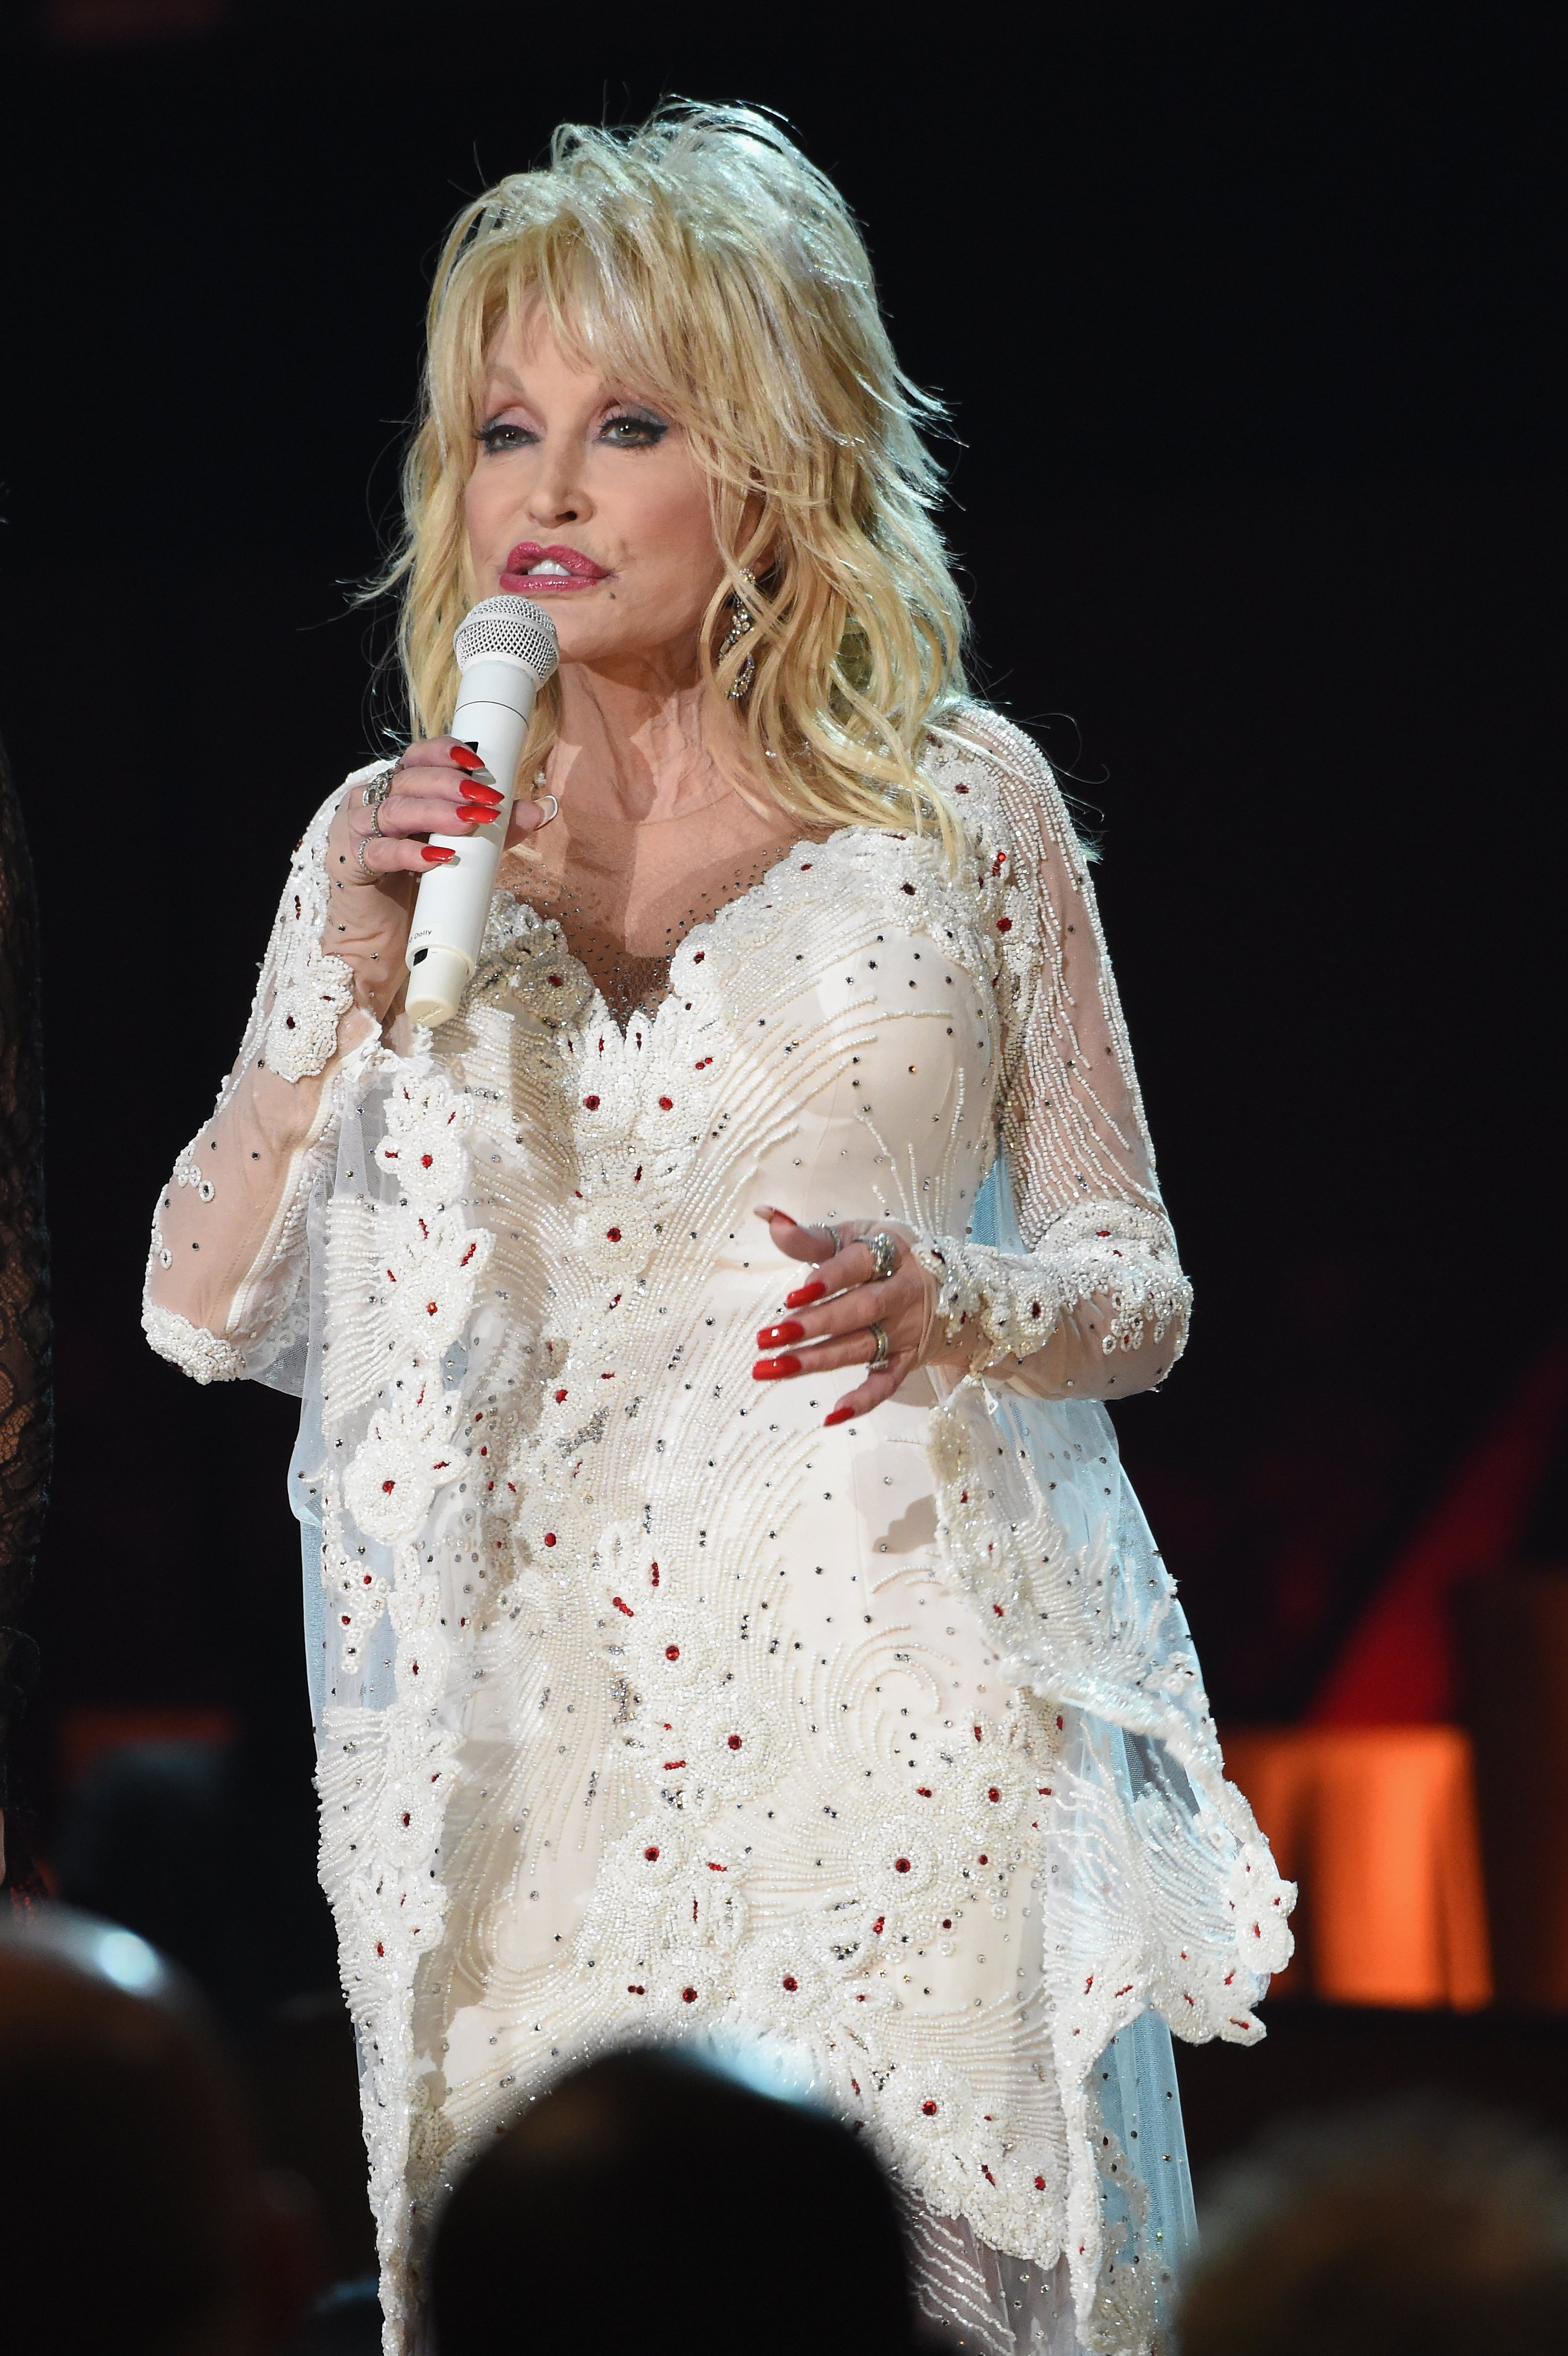 Dolly Parton performs onstage during the 61st Annual GRAMMY Awards at Staples Center on February 10, 2019. | Photo: GettyImages